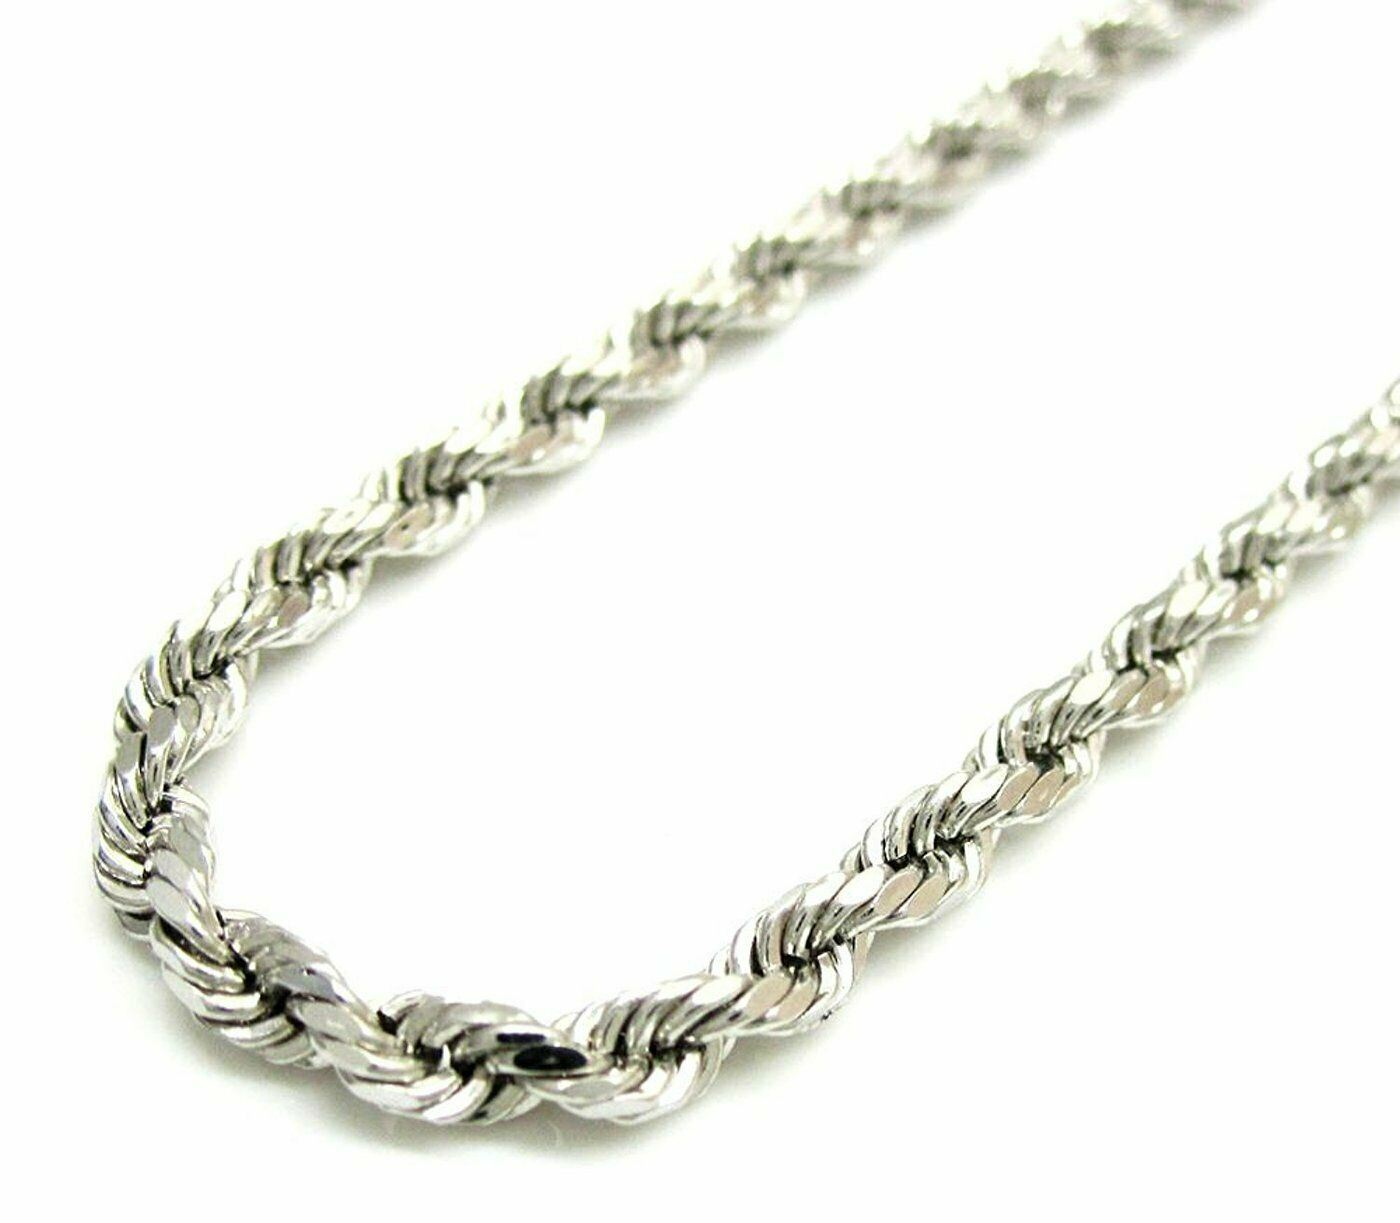 4.5mm Mens Solid .925 Sterling Silver Diamond-Cut Rope Chain Necklace